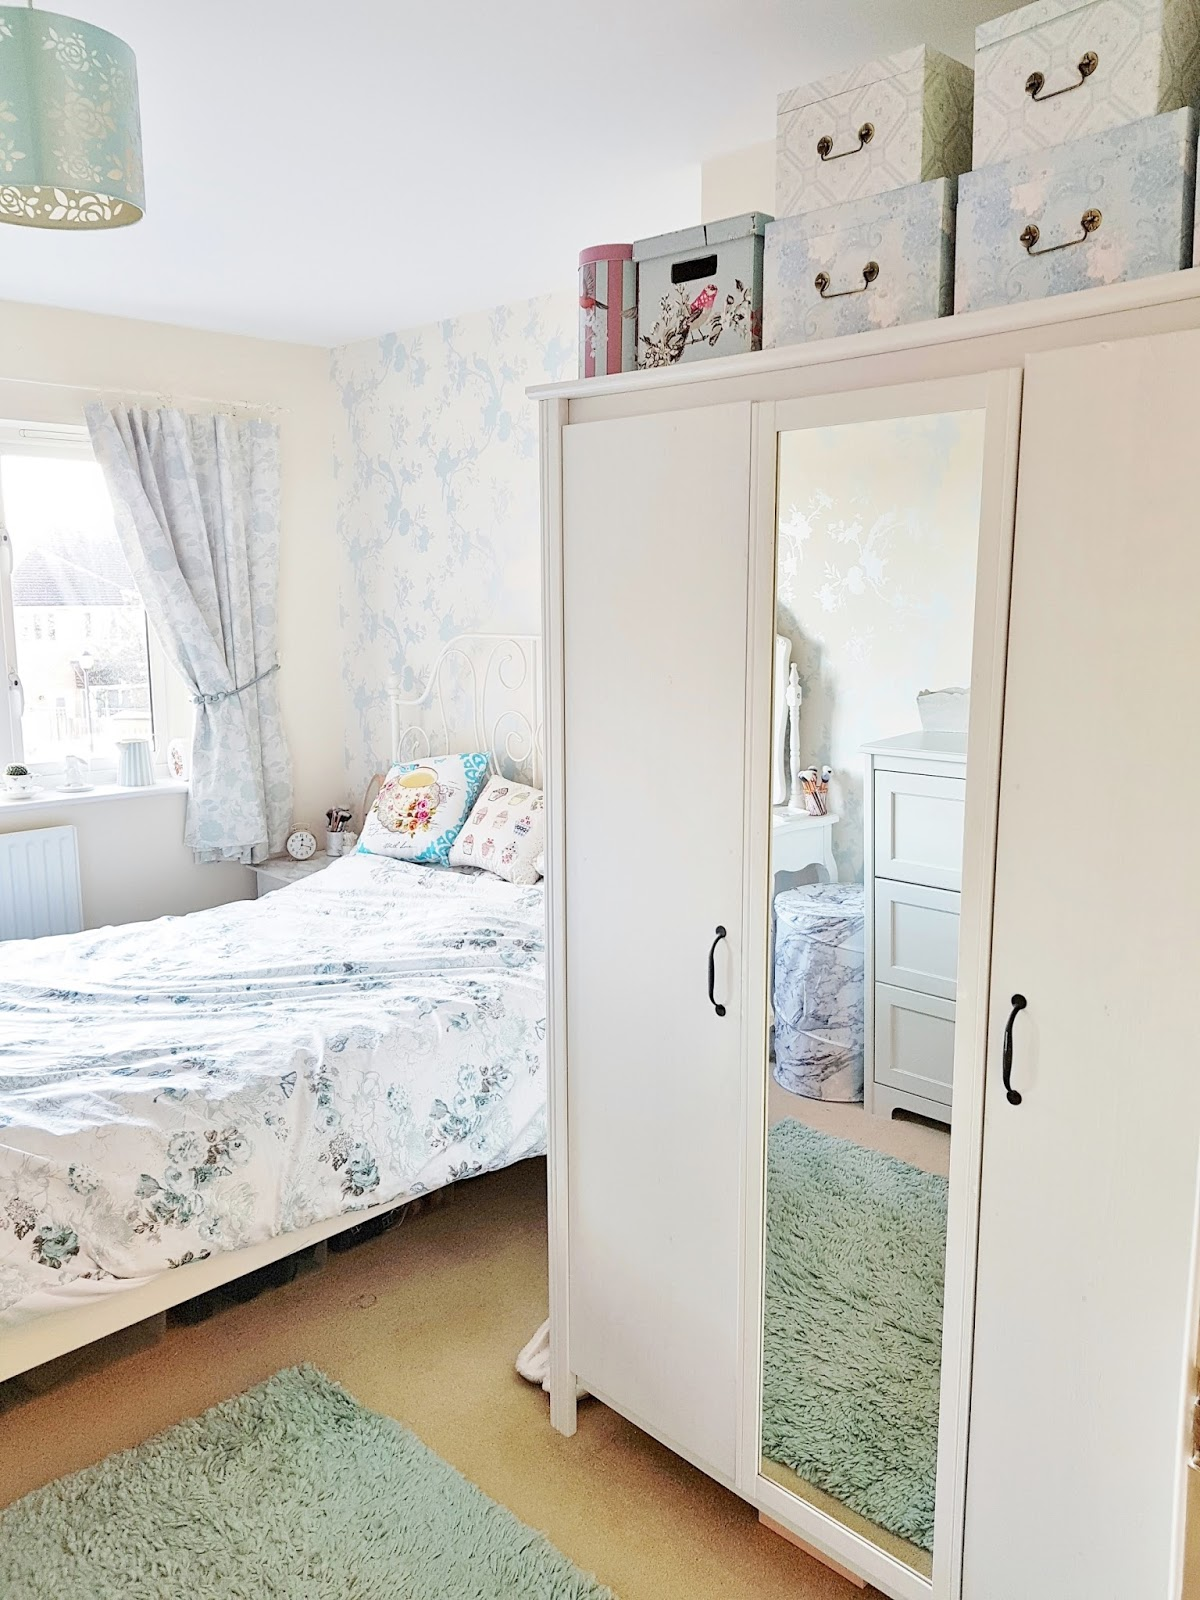 My First Home: The Bedroom